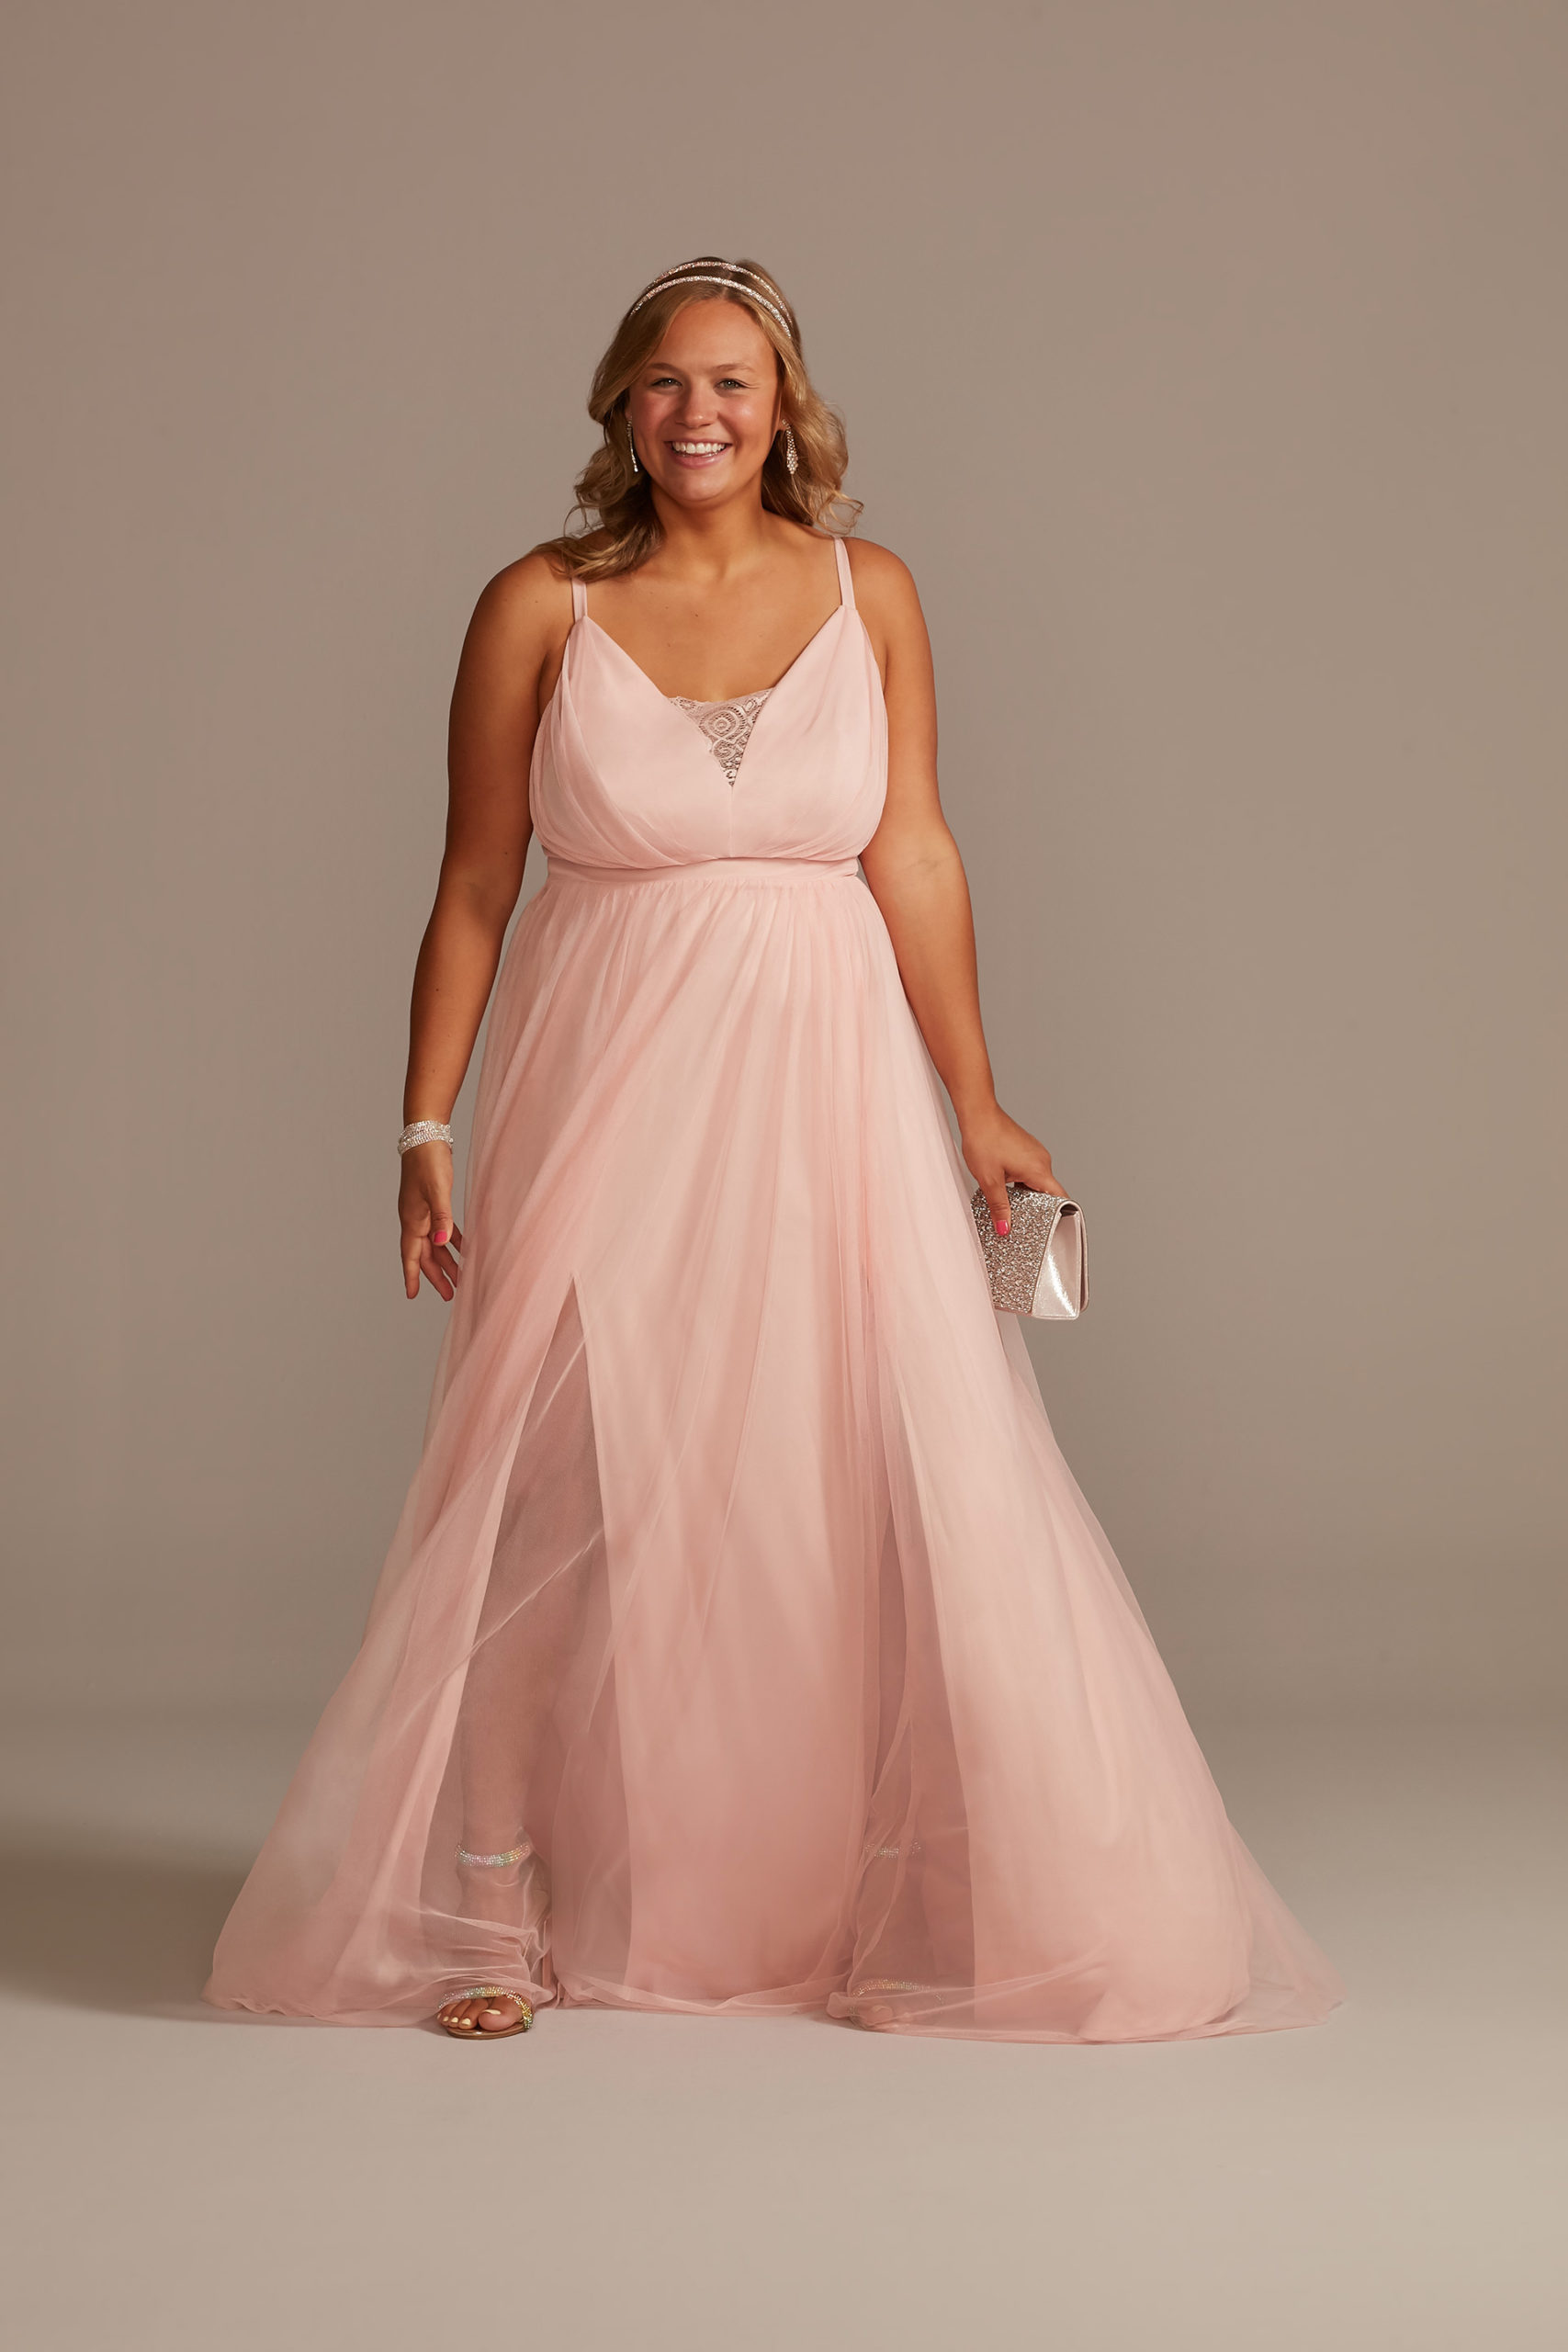 peach Tulle Illusion Plunge A-Line prom dress